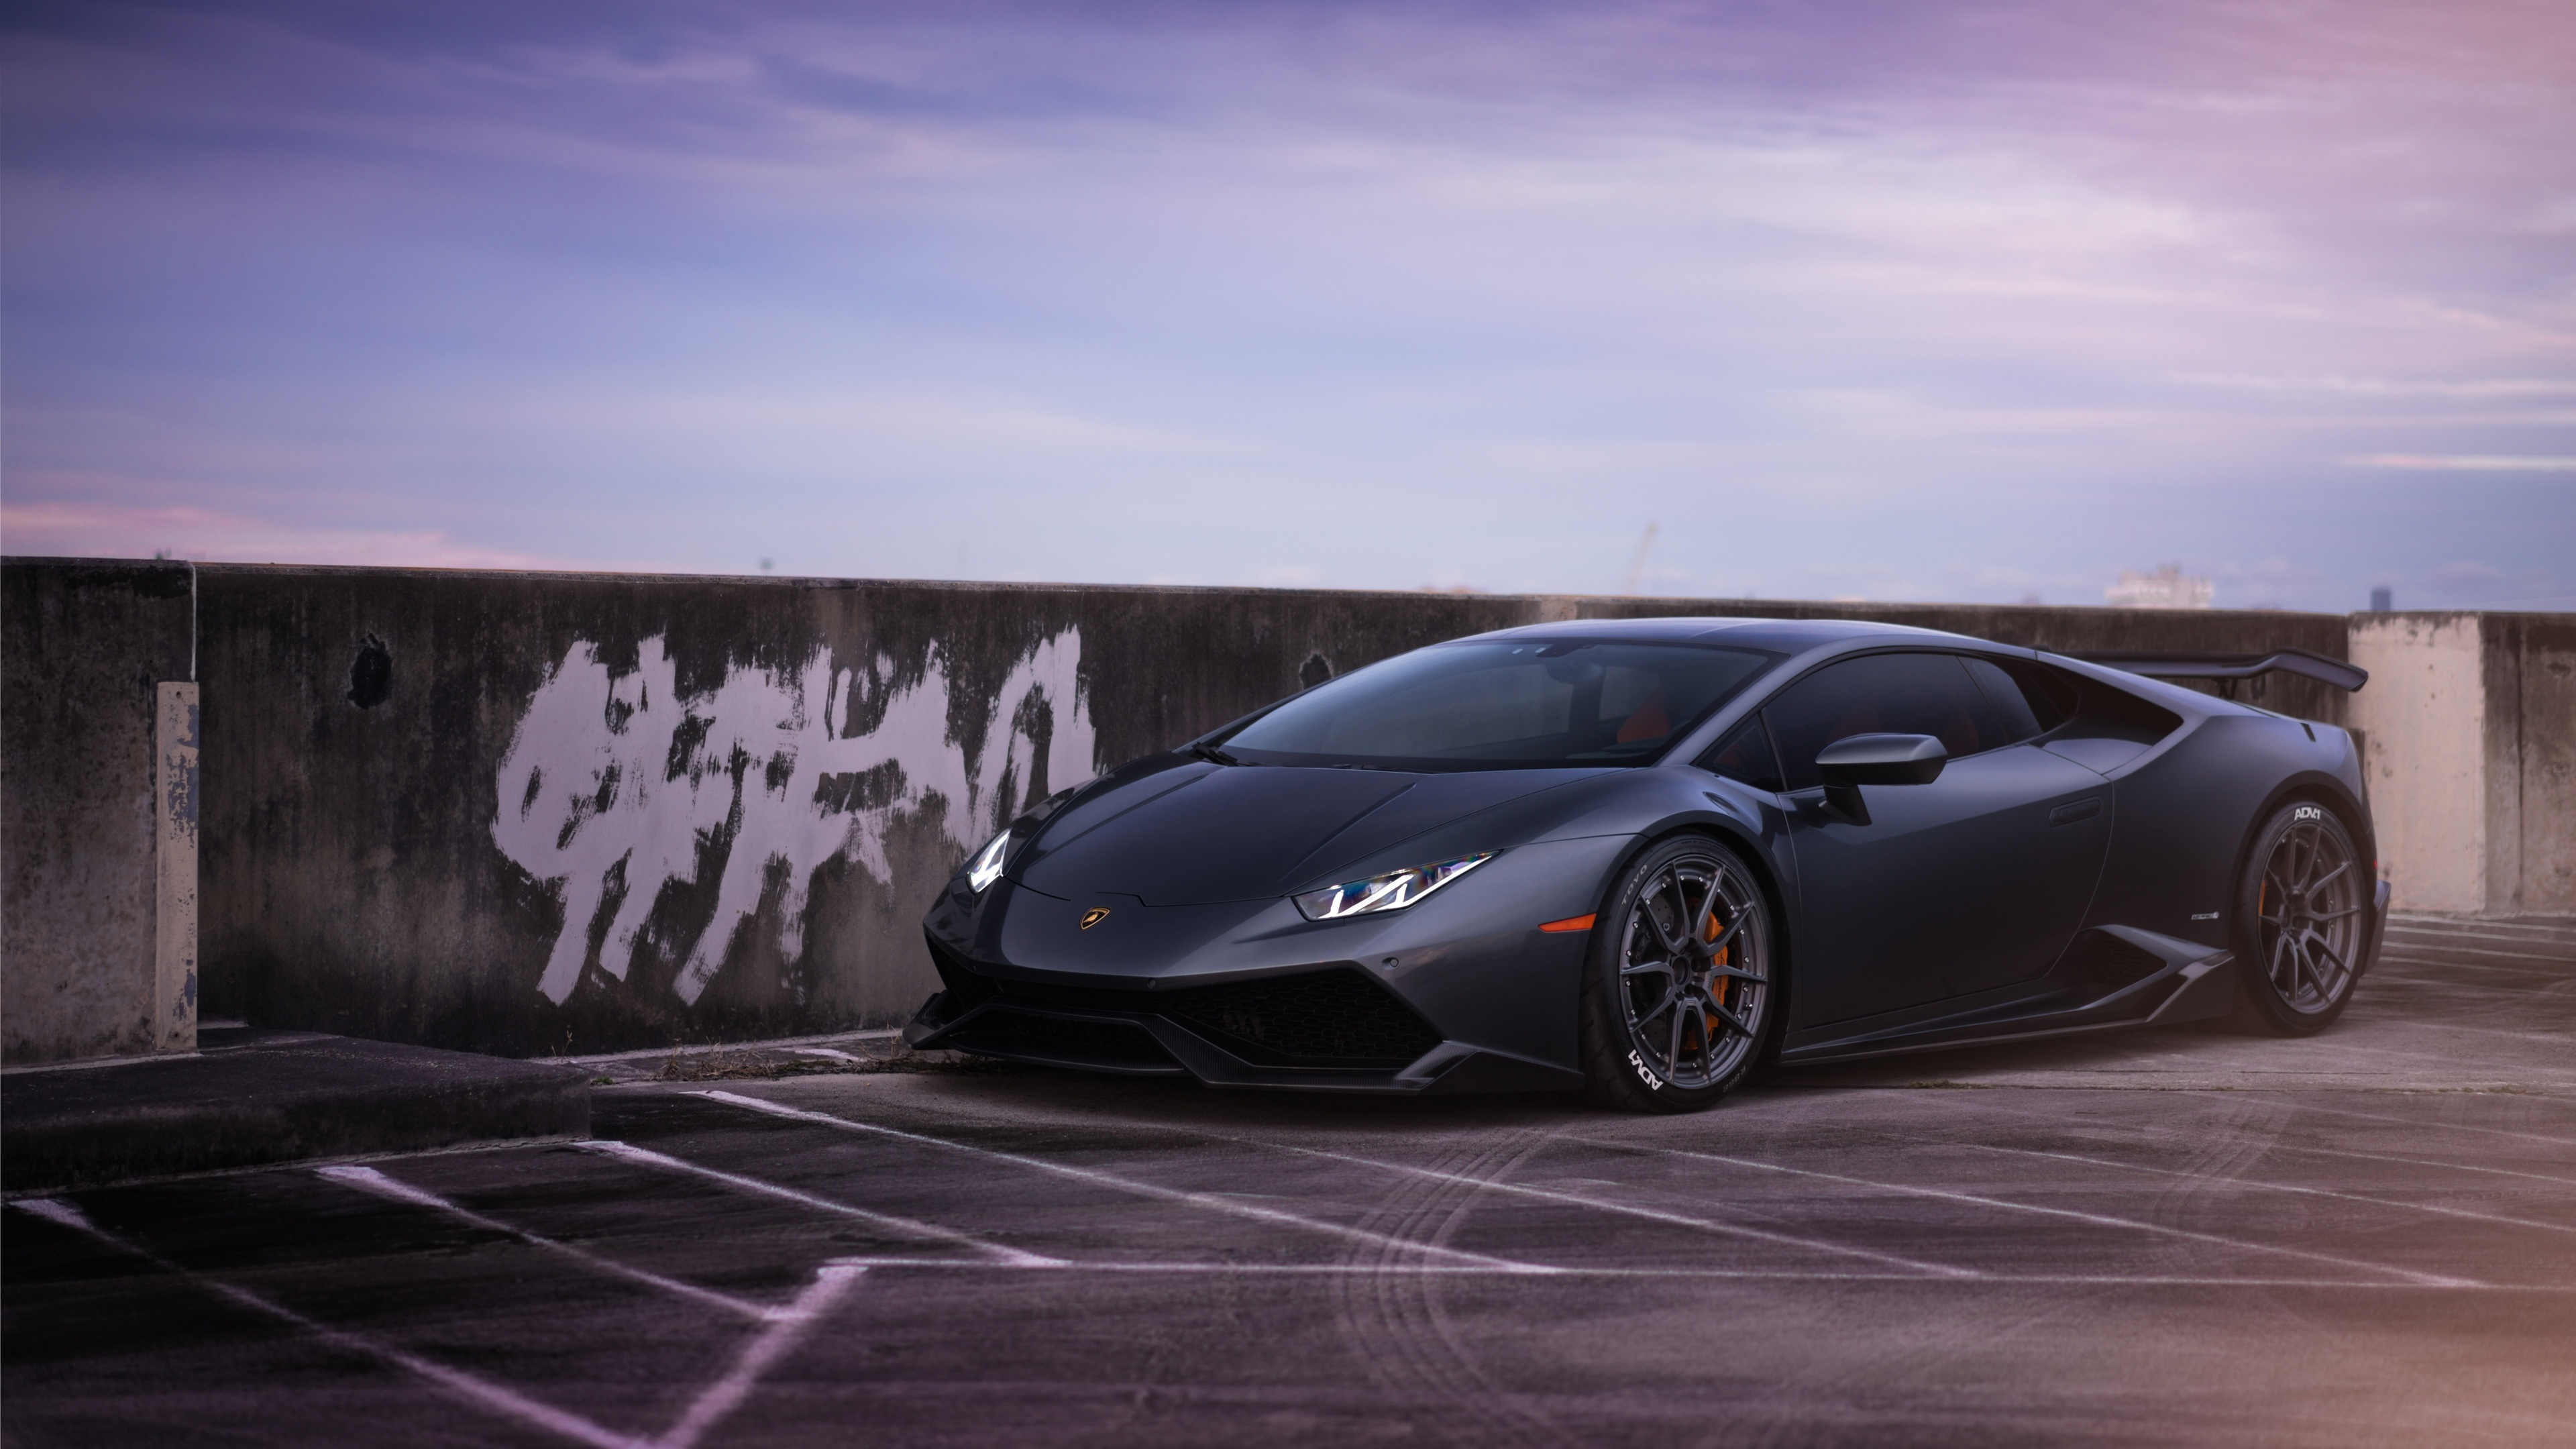 26 Lamborghini Huracan Wallpapers On Wallpapersafari